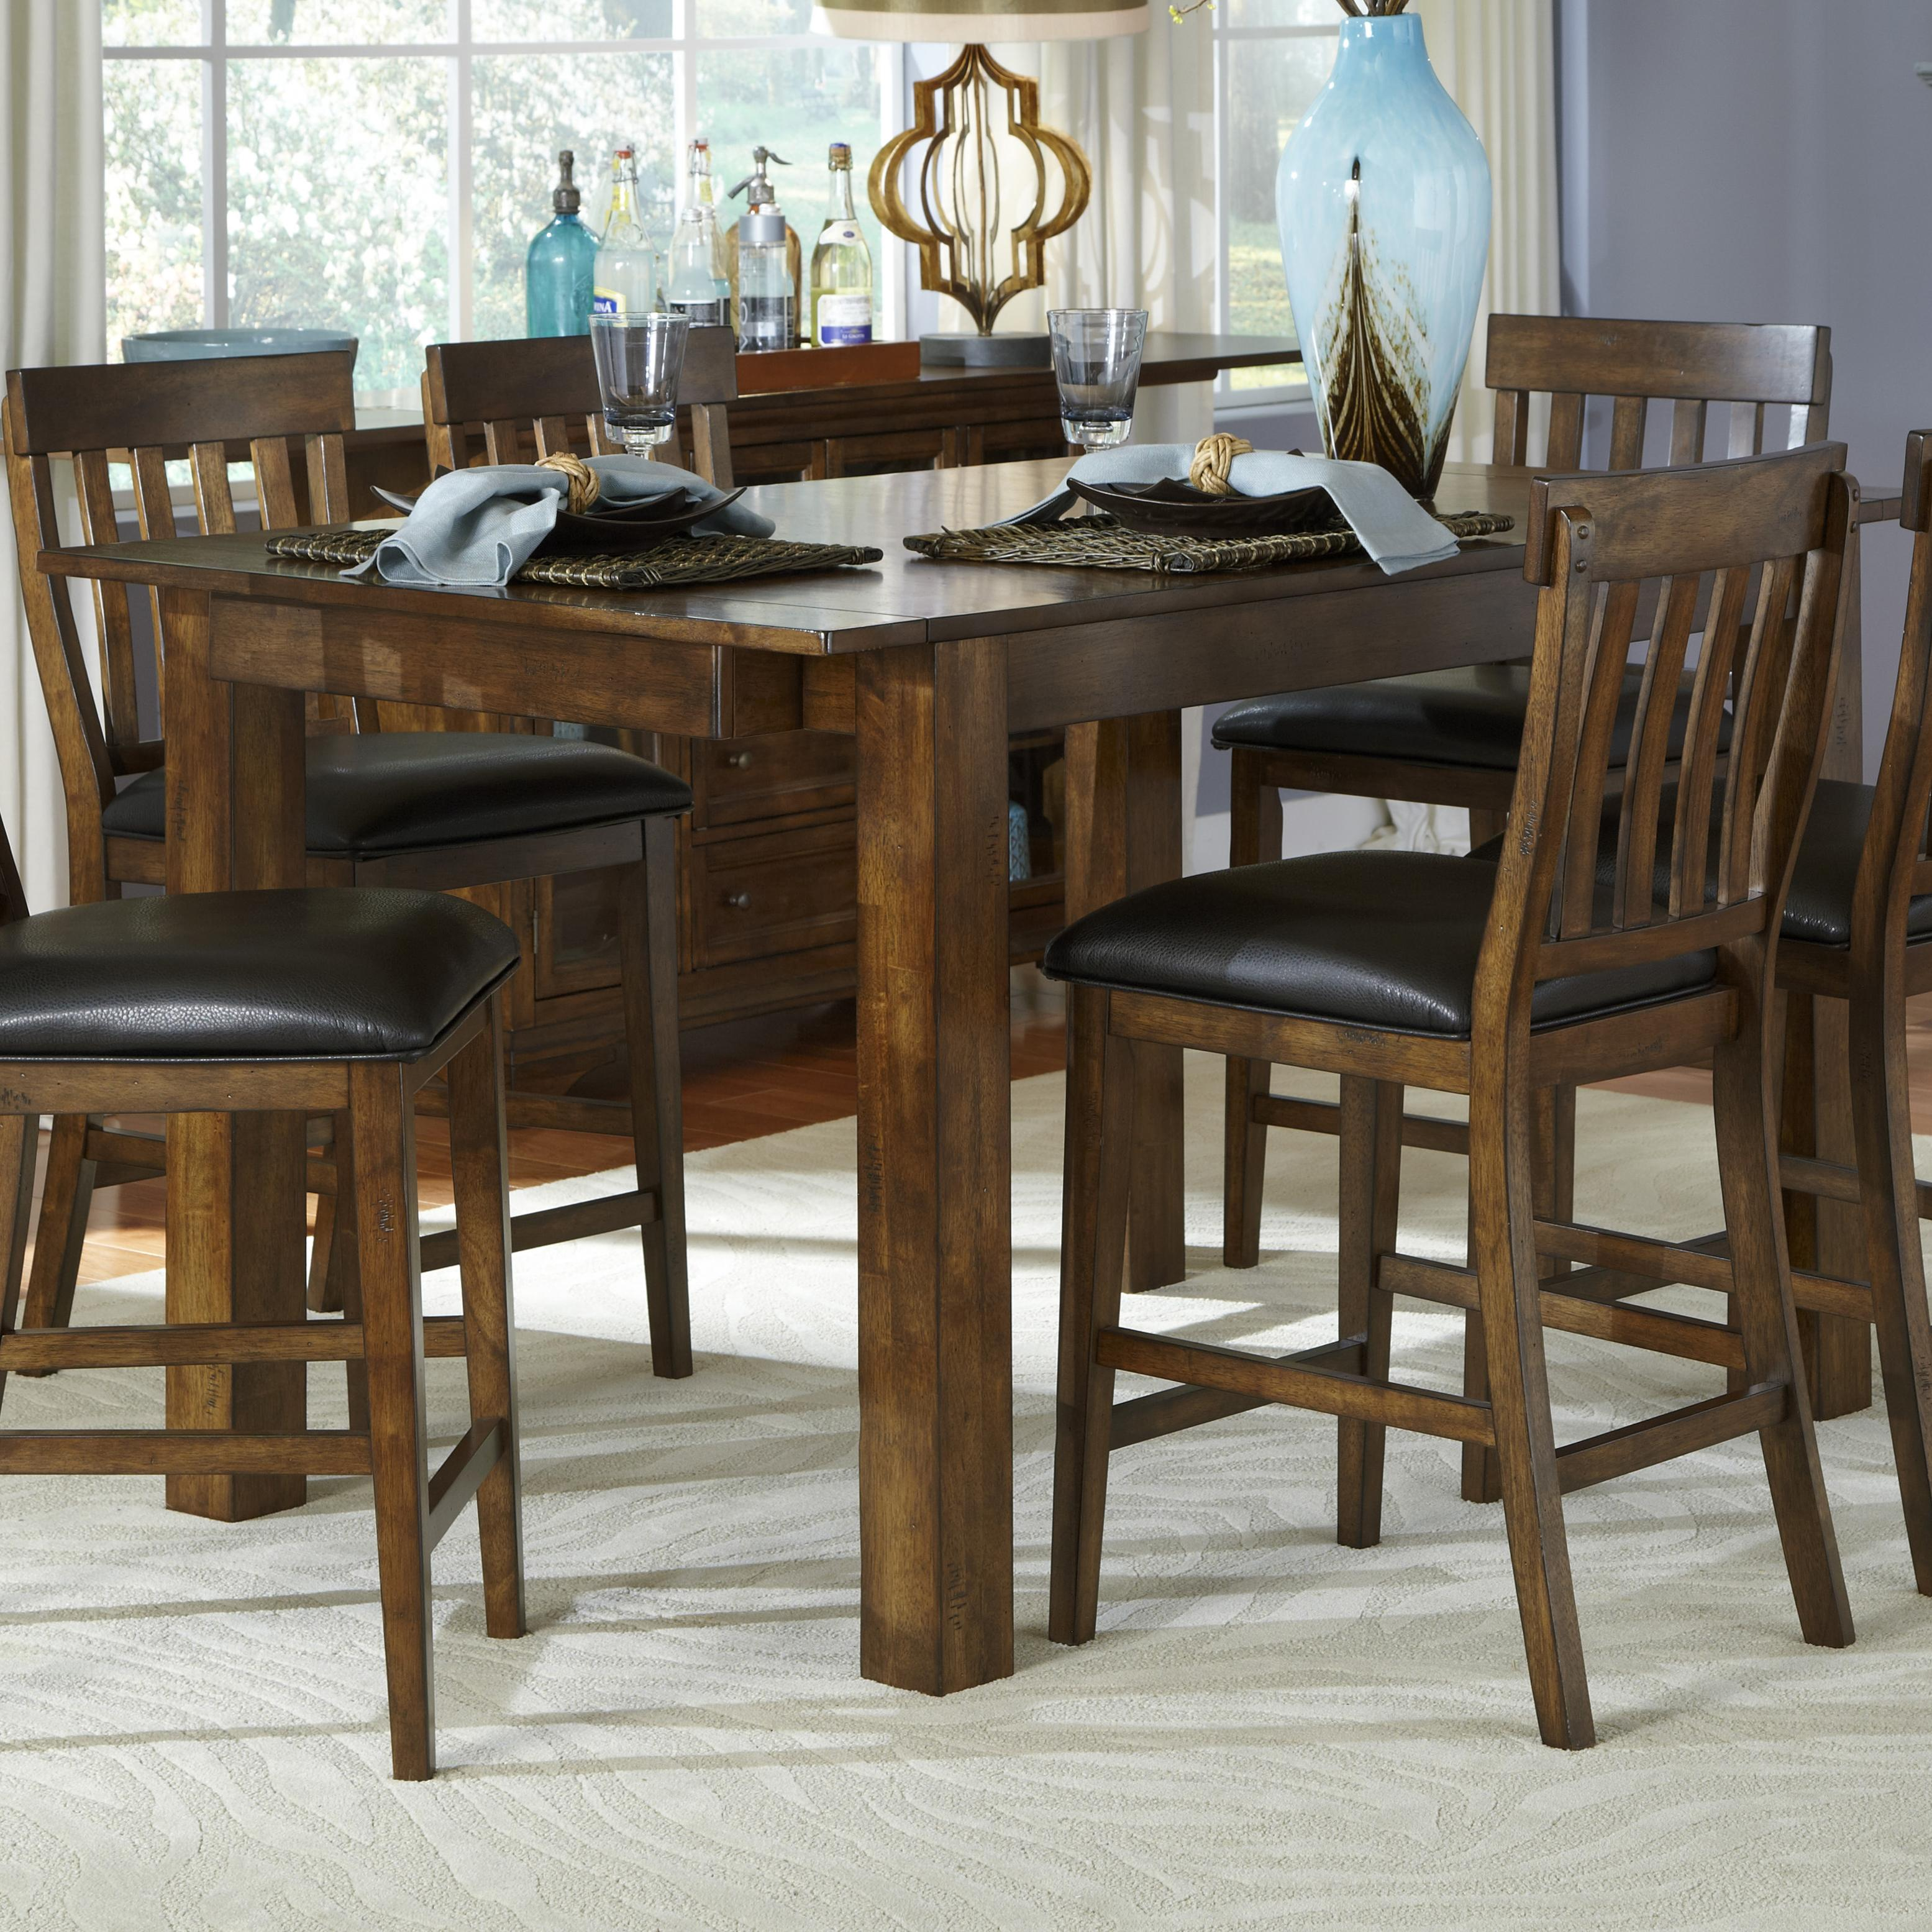 Mariposa Gathering Leg Table by AAmerica at Darvin Furniture